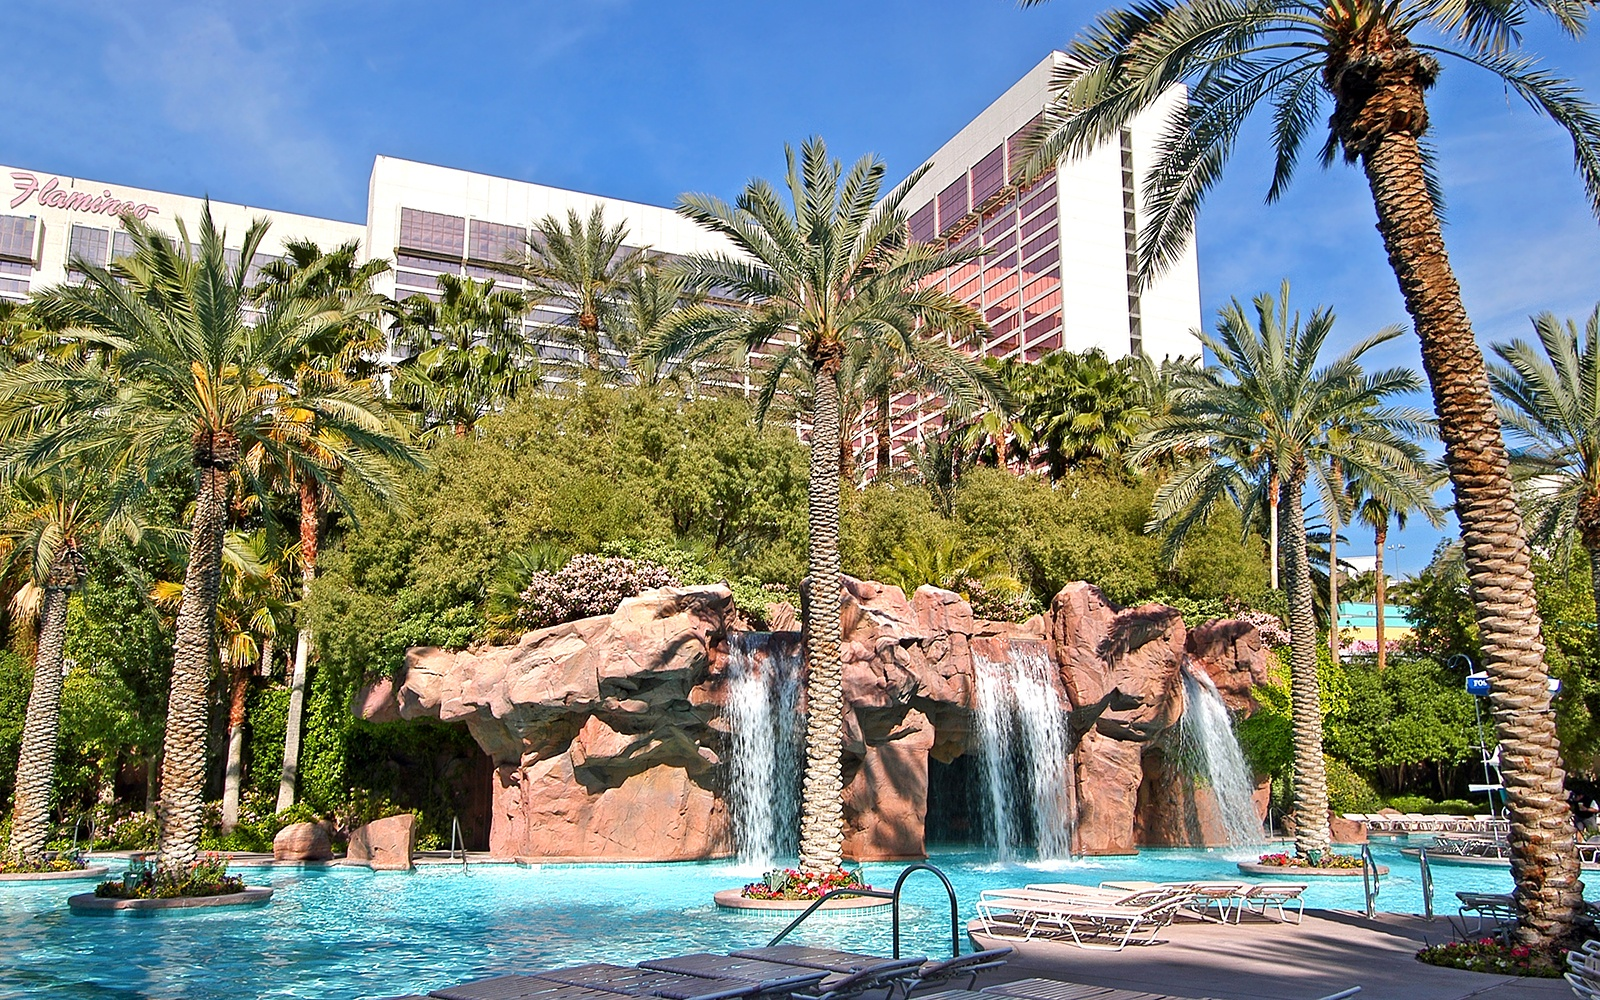 GO Pool, The Flamingo Vegas